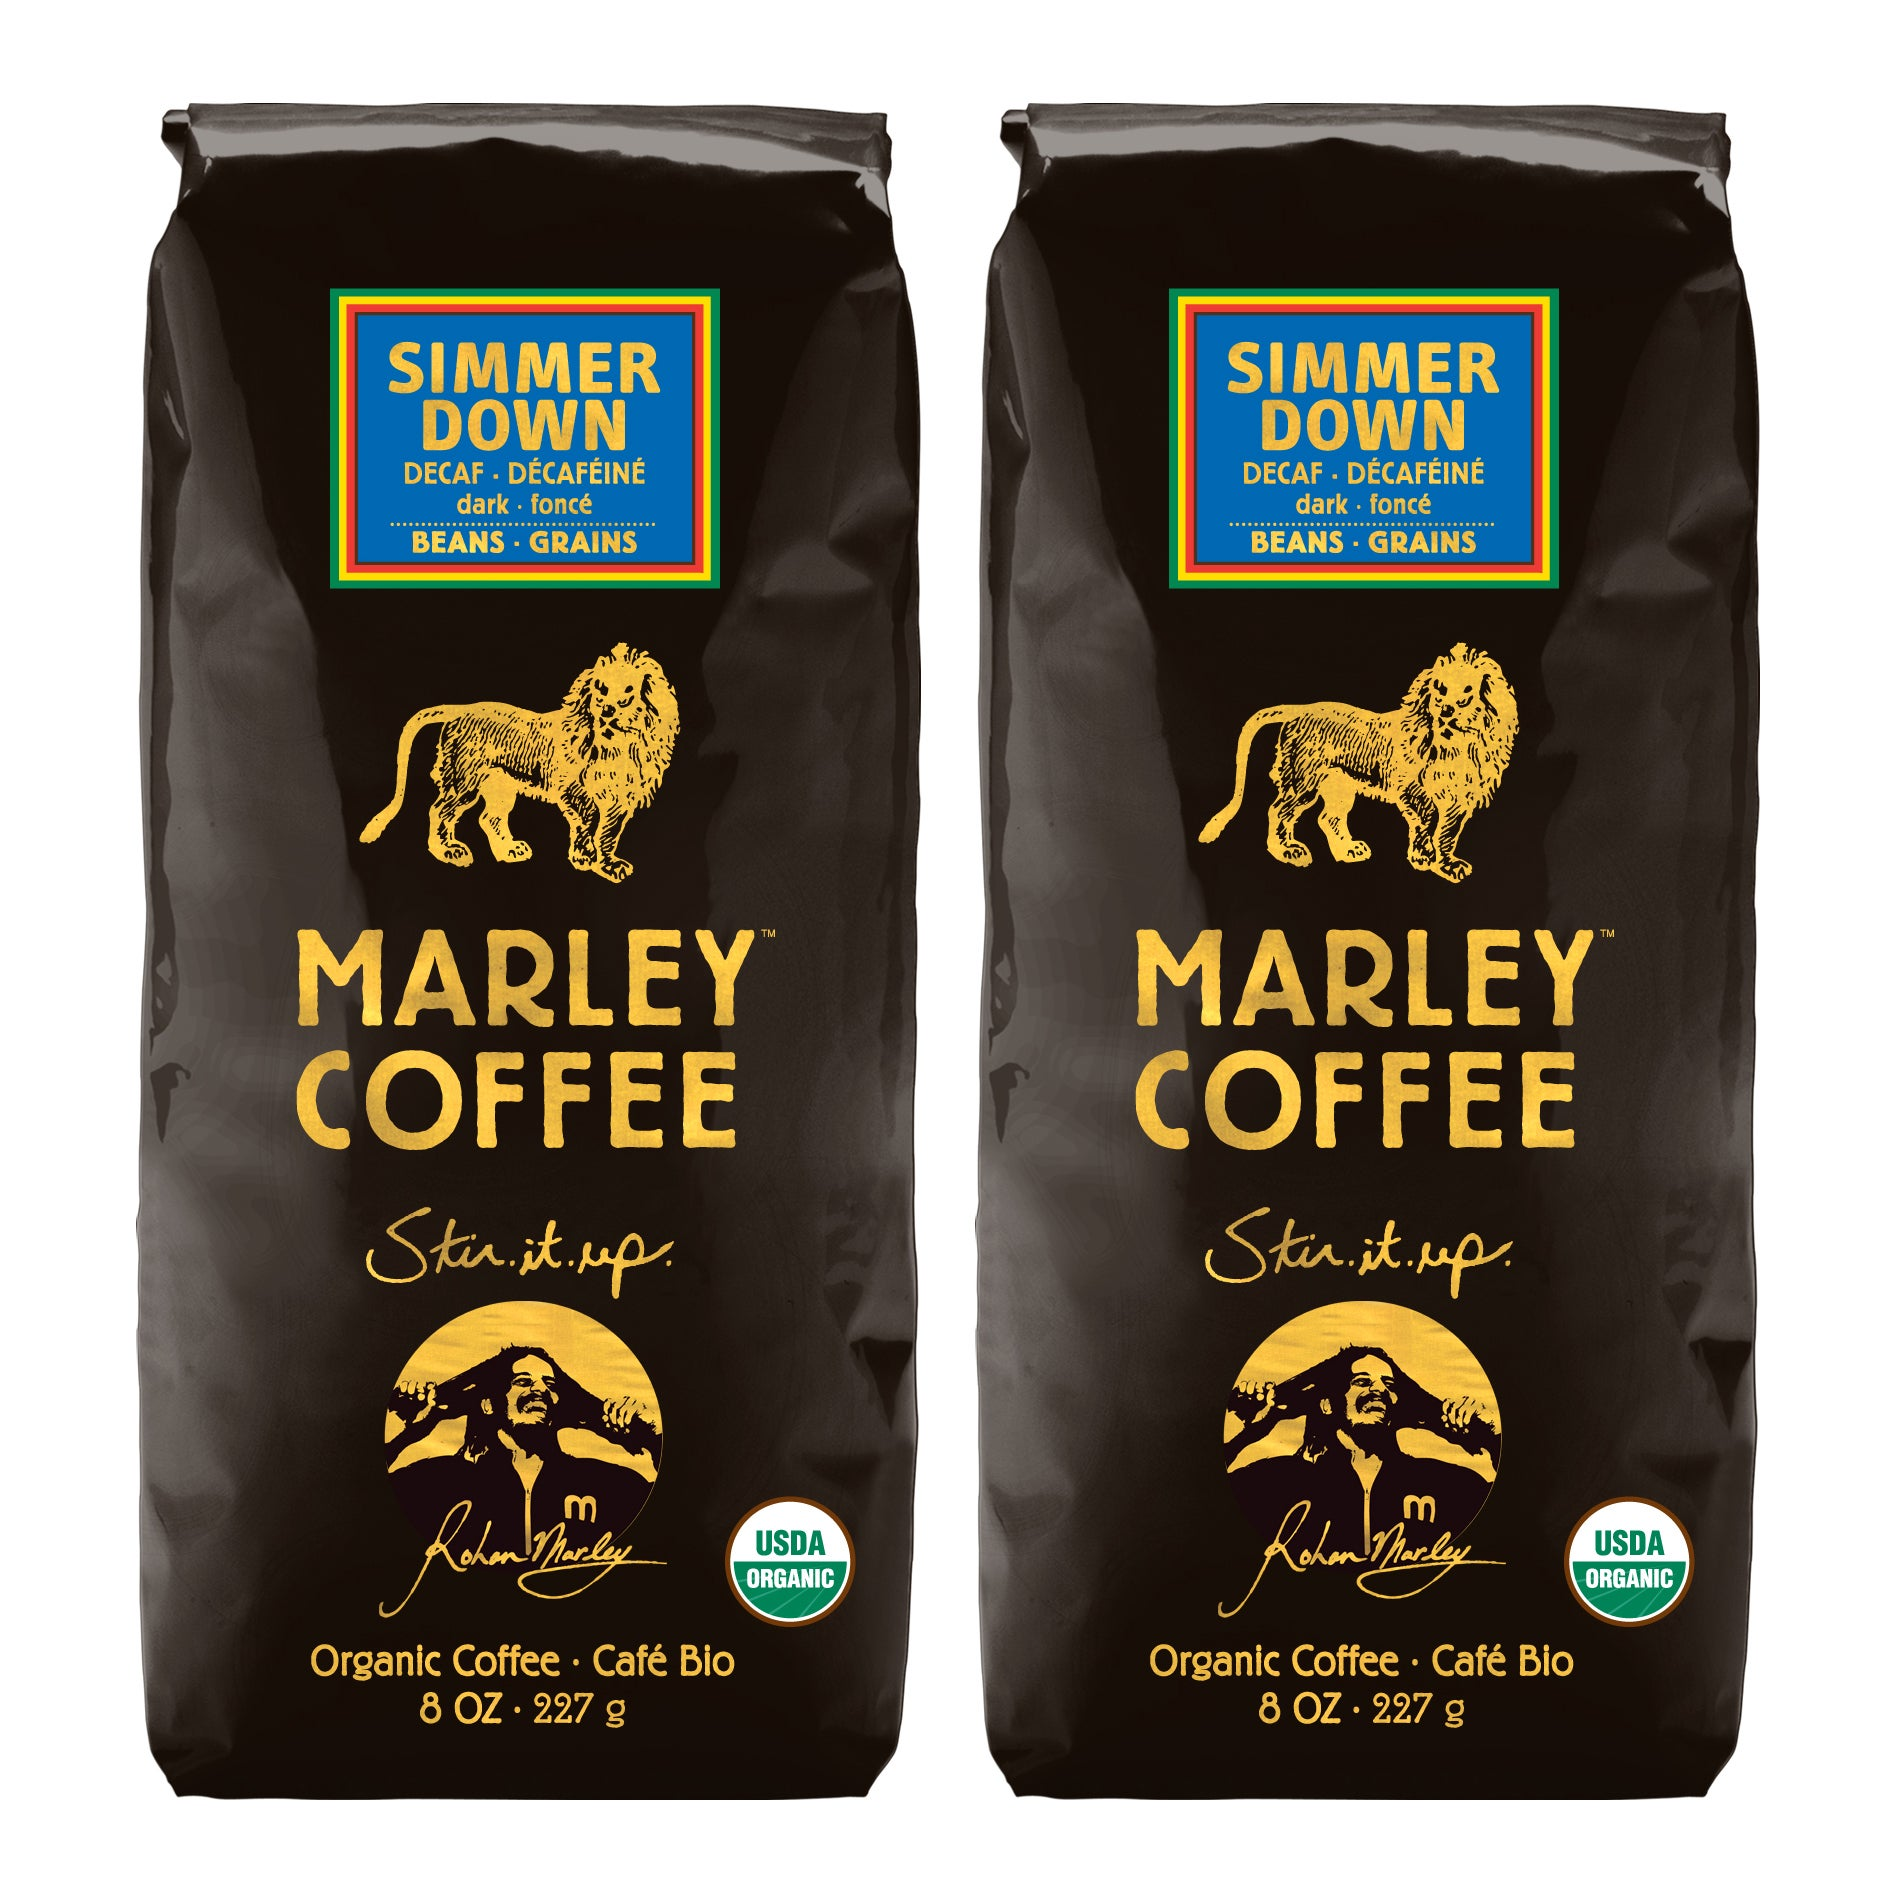 Marley Coffee Simmer Down Swiss Decaf Whole Bean Coffee (1 Pound)